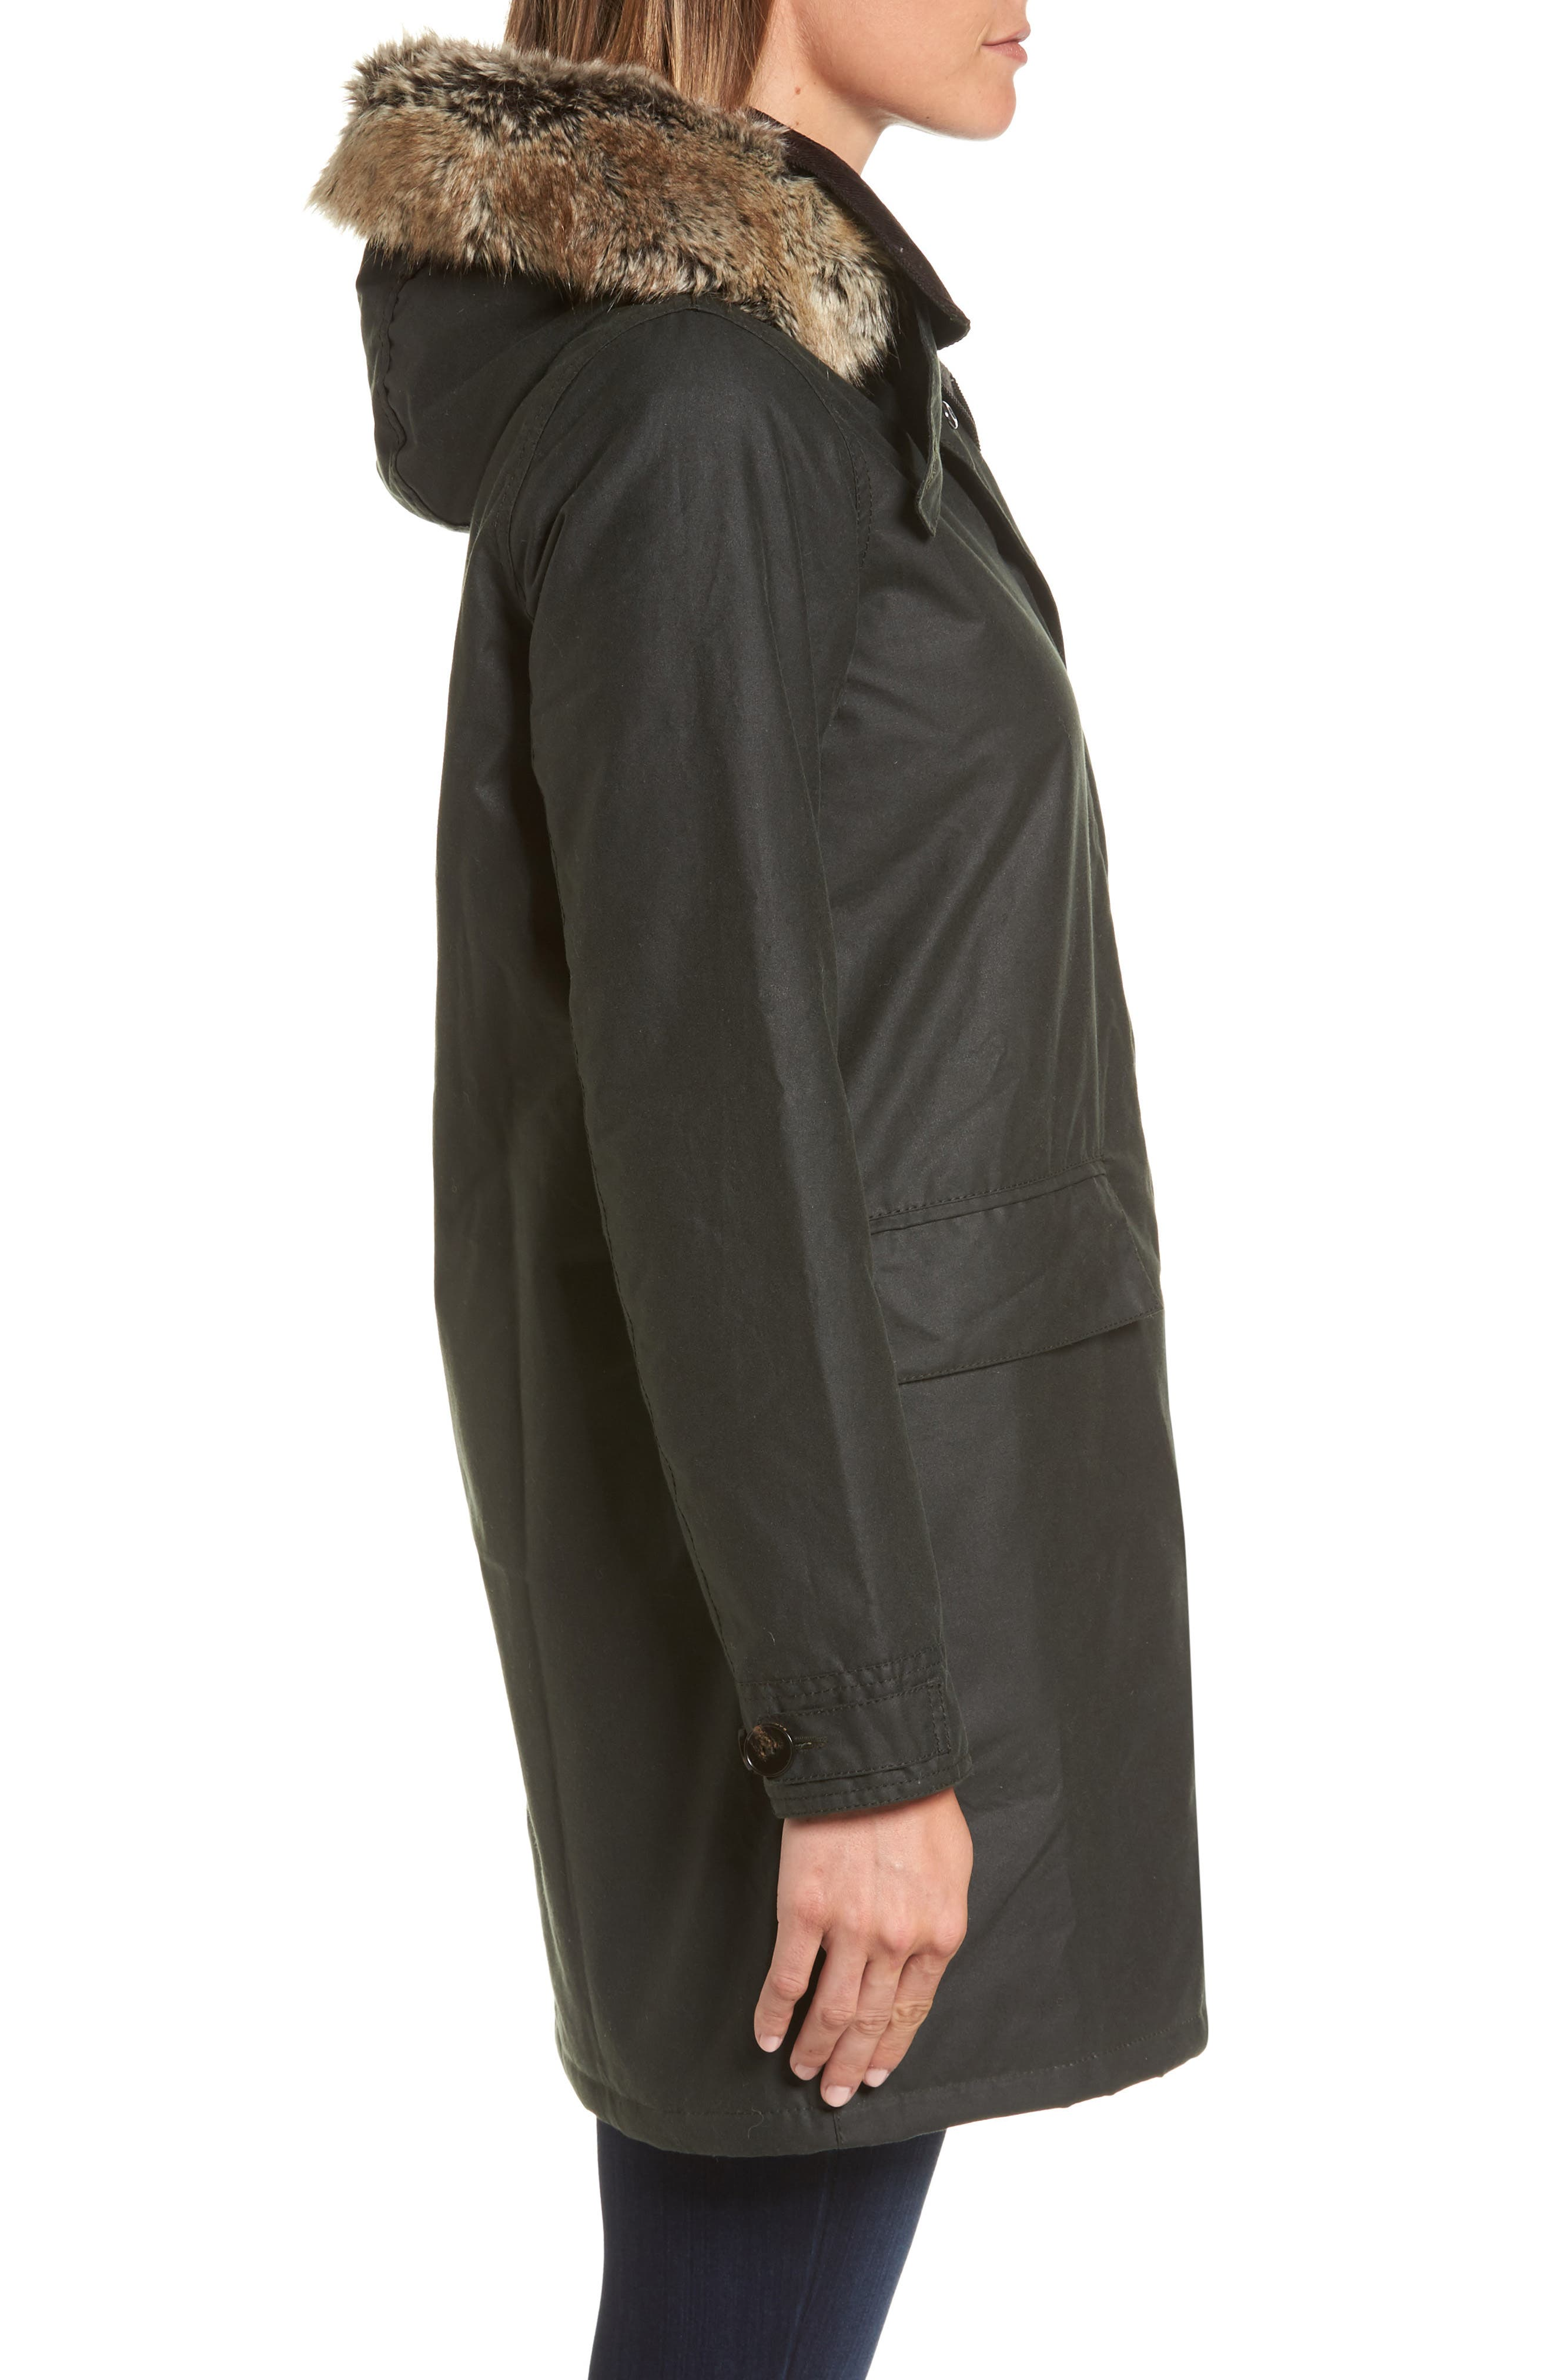 Fortrose Hooded Water Resistant Waxed Canvas Jacket with Faux Fur Trim,                             Alternate thumbnail 3, color,                             302